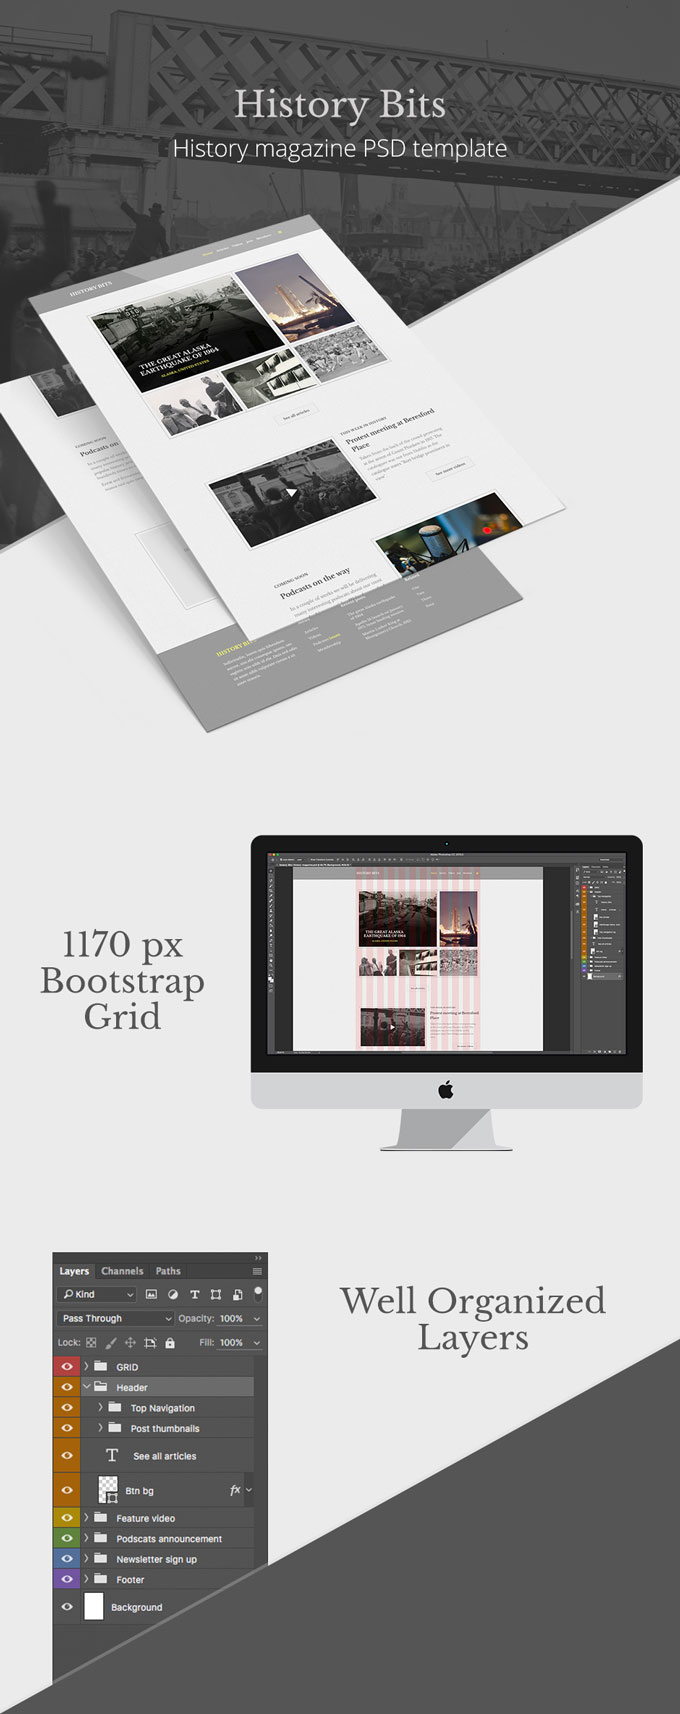 History Bits PSD web template